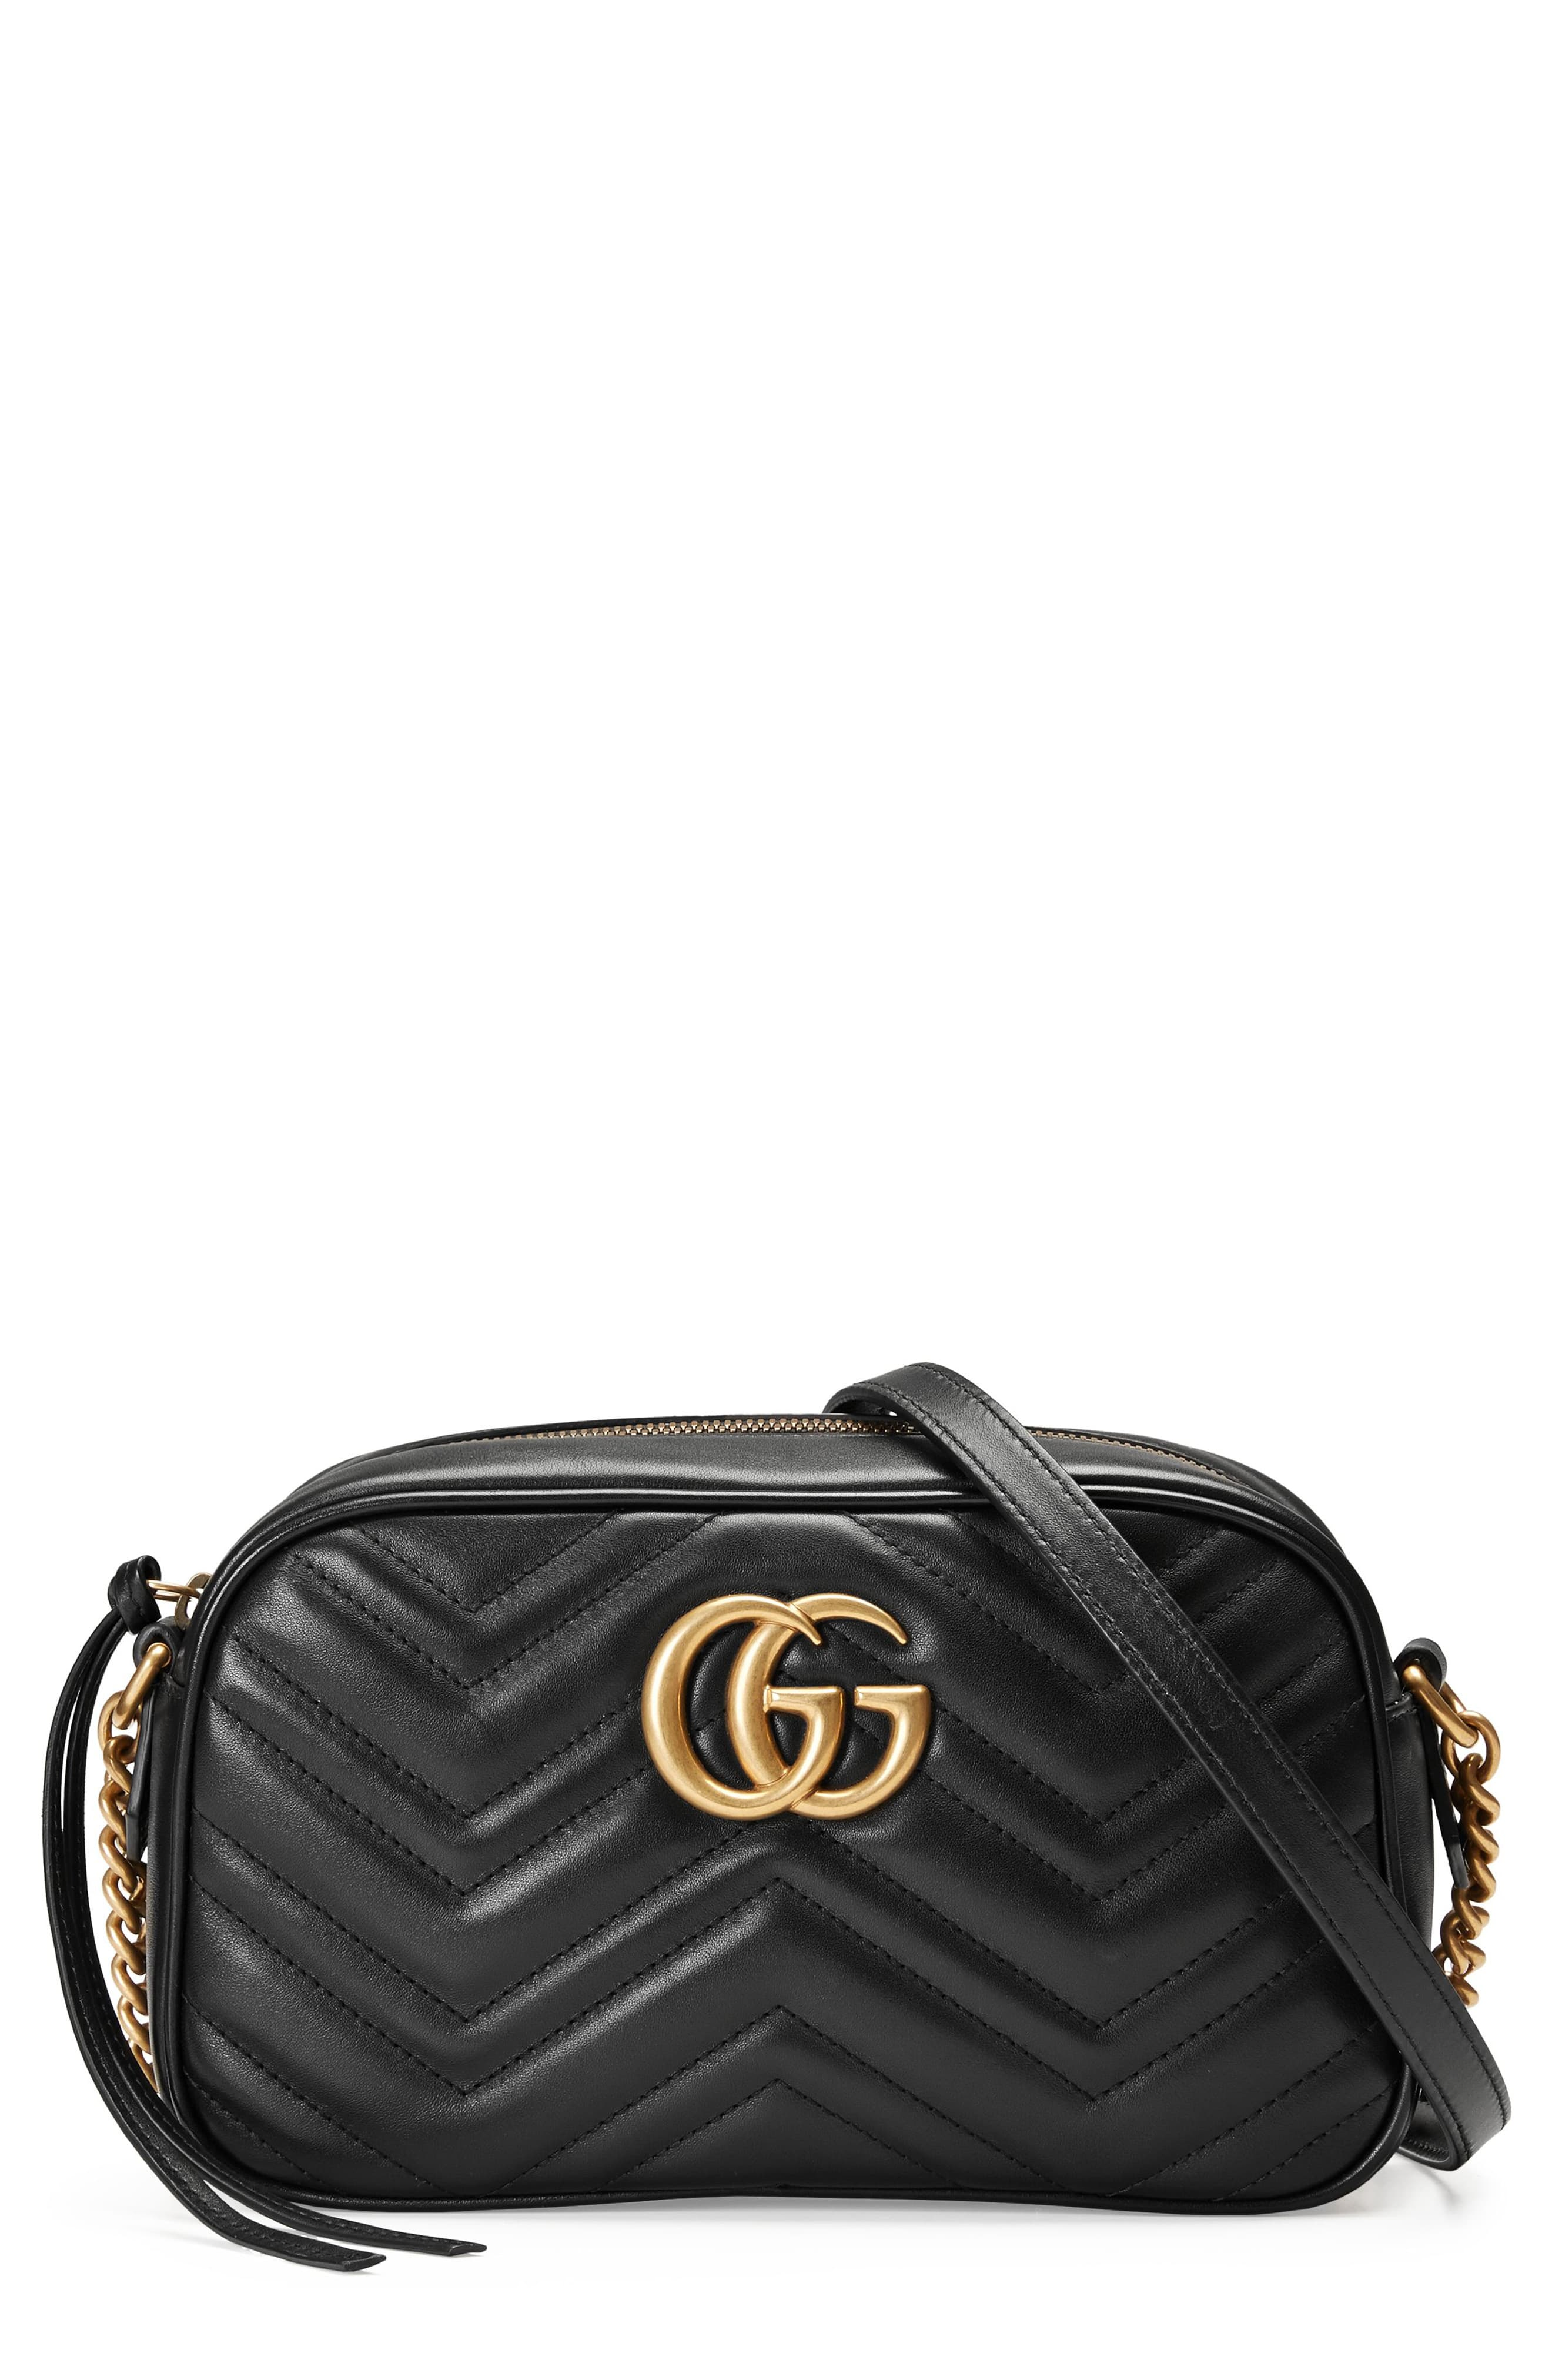 734da6de Gucci Small Gg Marmont 2.0 Matelassé Leather Camera Bag - Black in ...